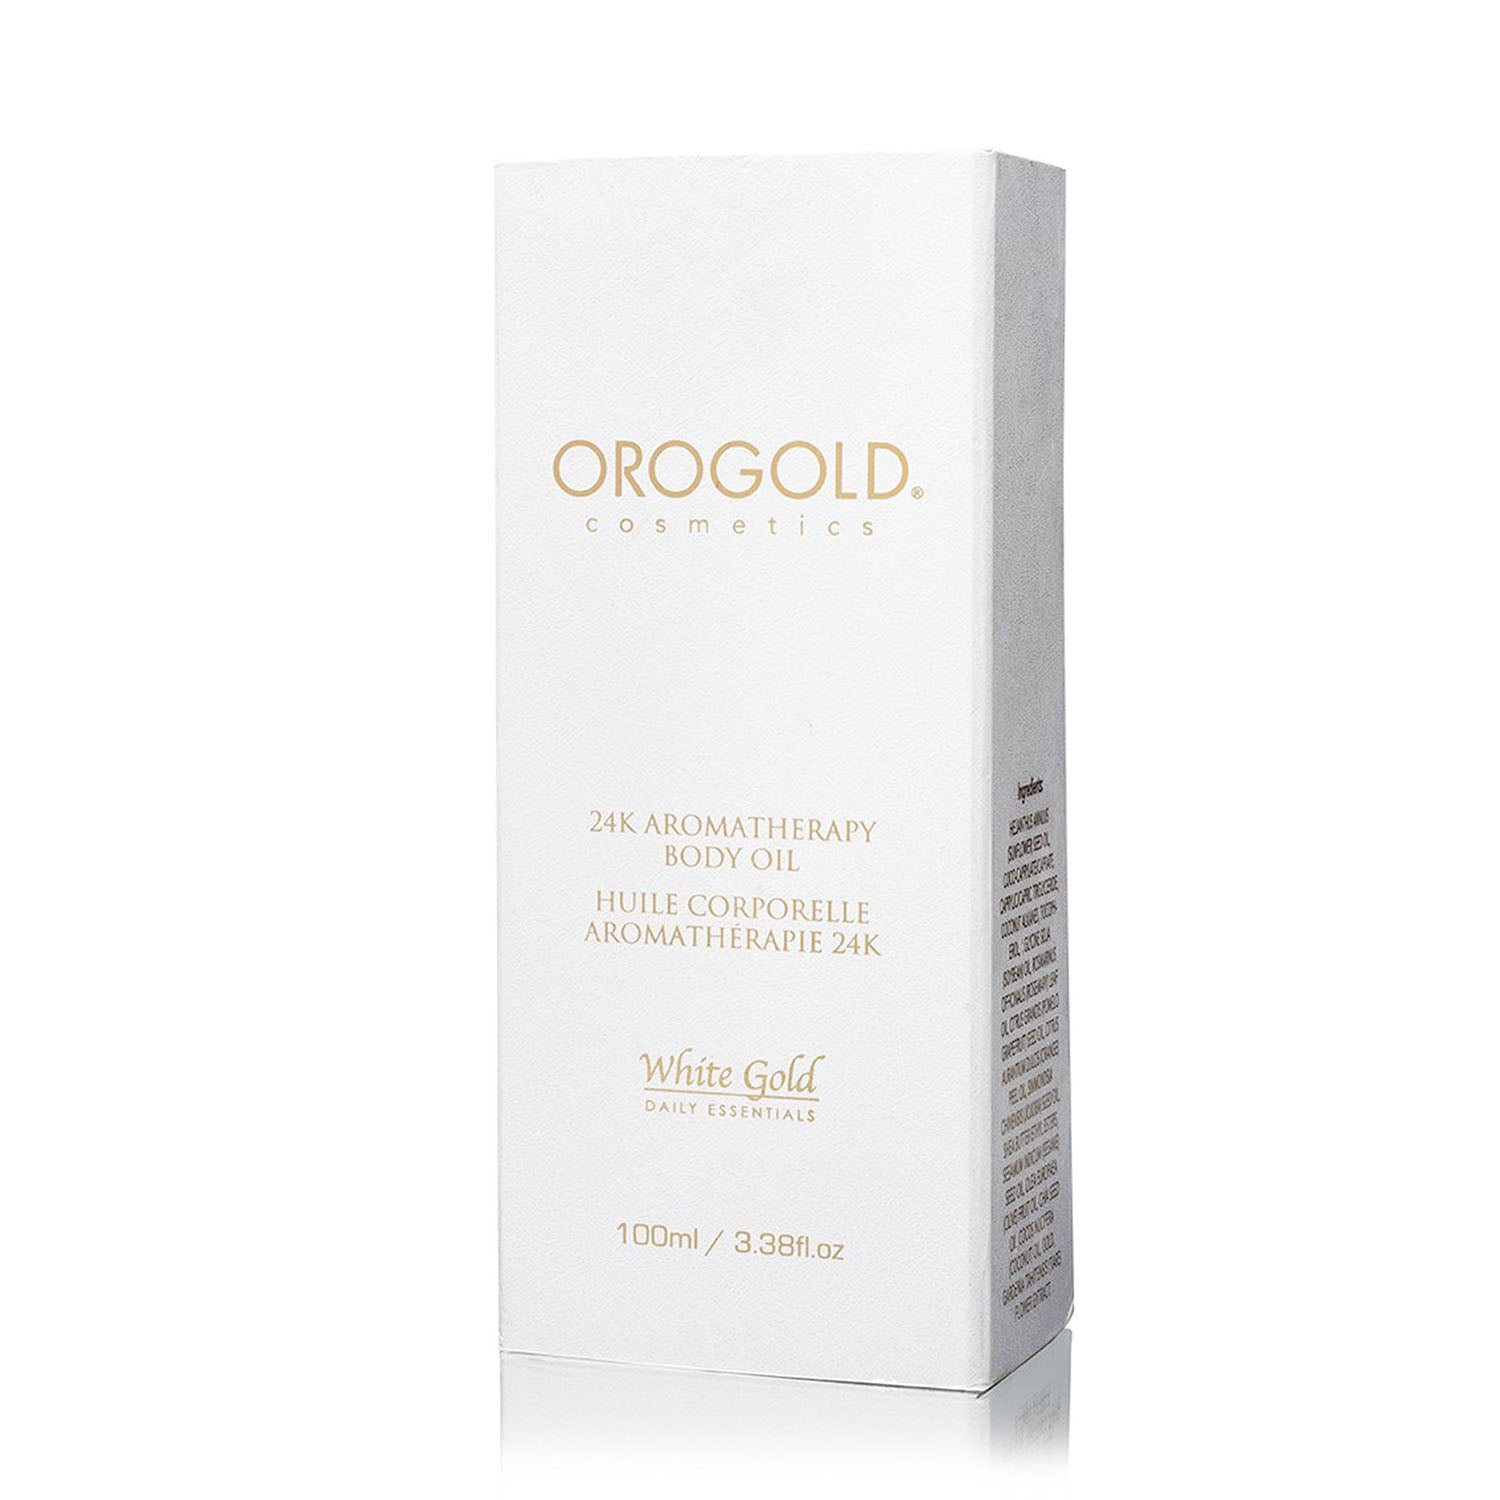 orogold white gold 24k aromatherapy body oil